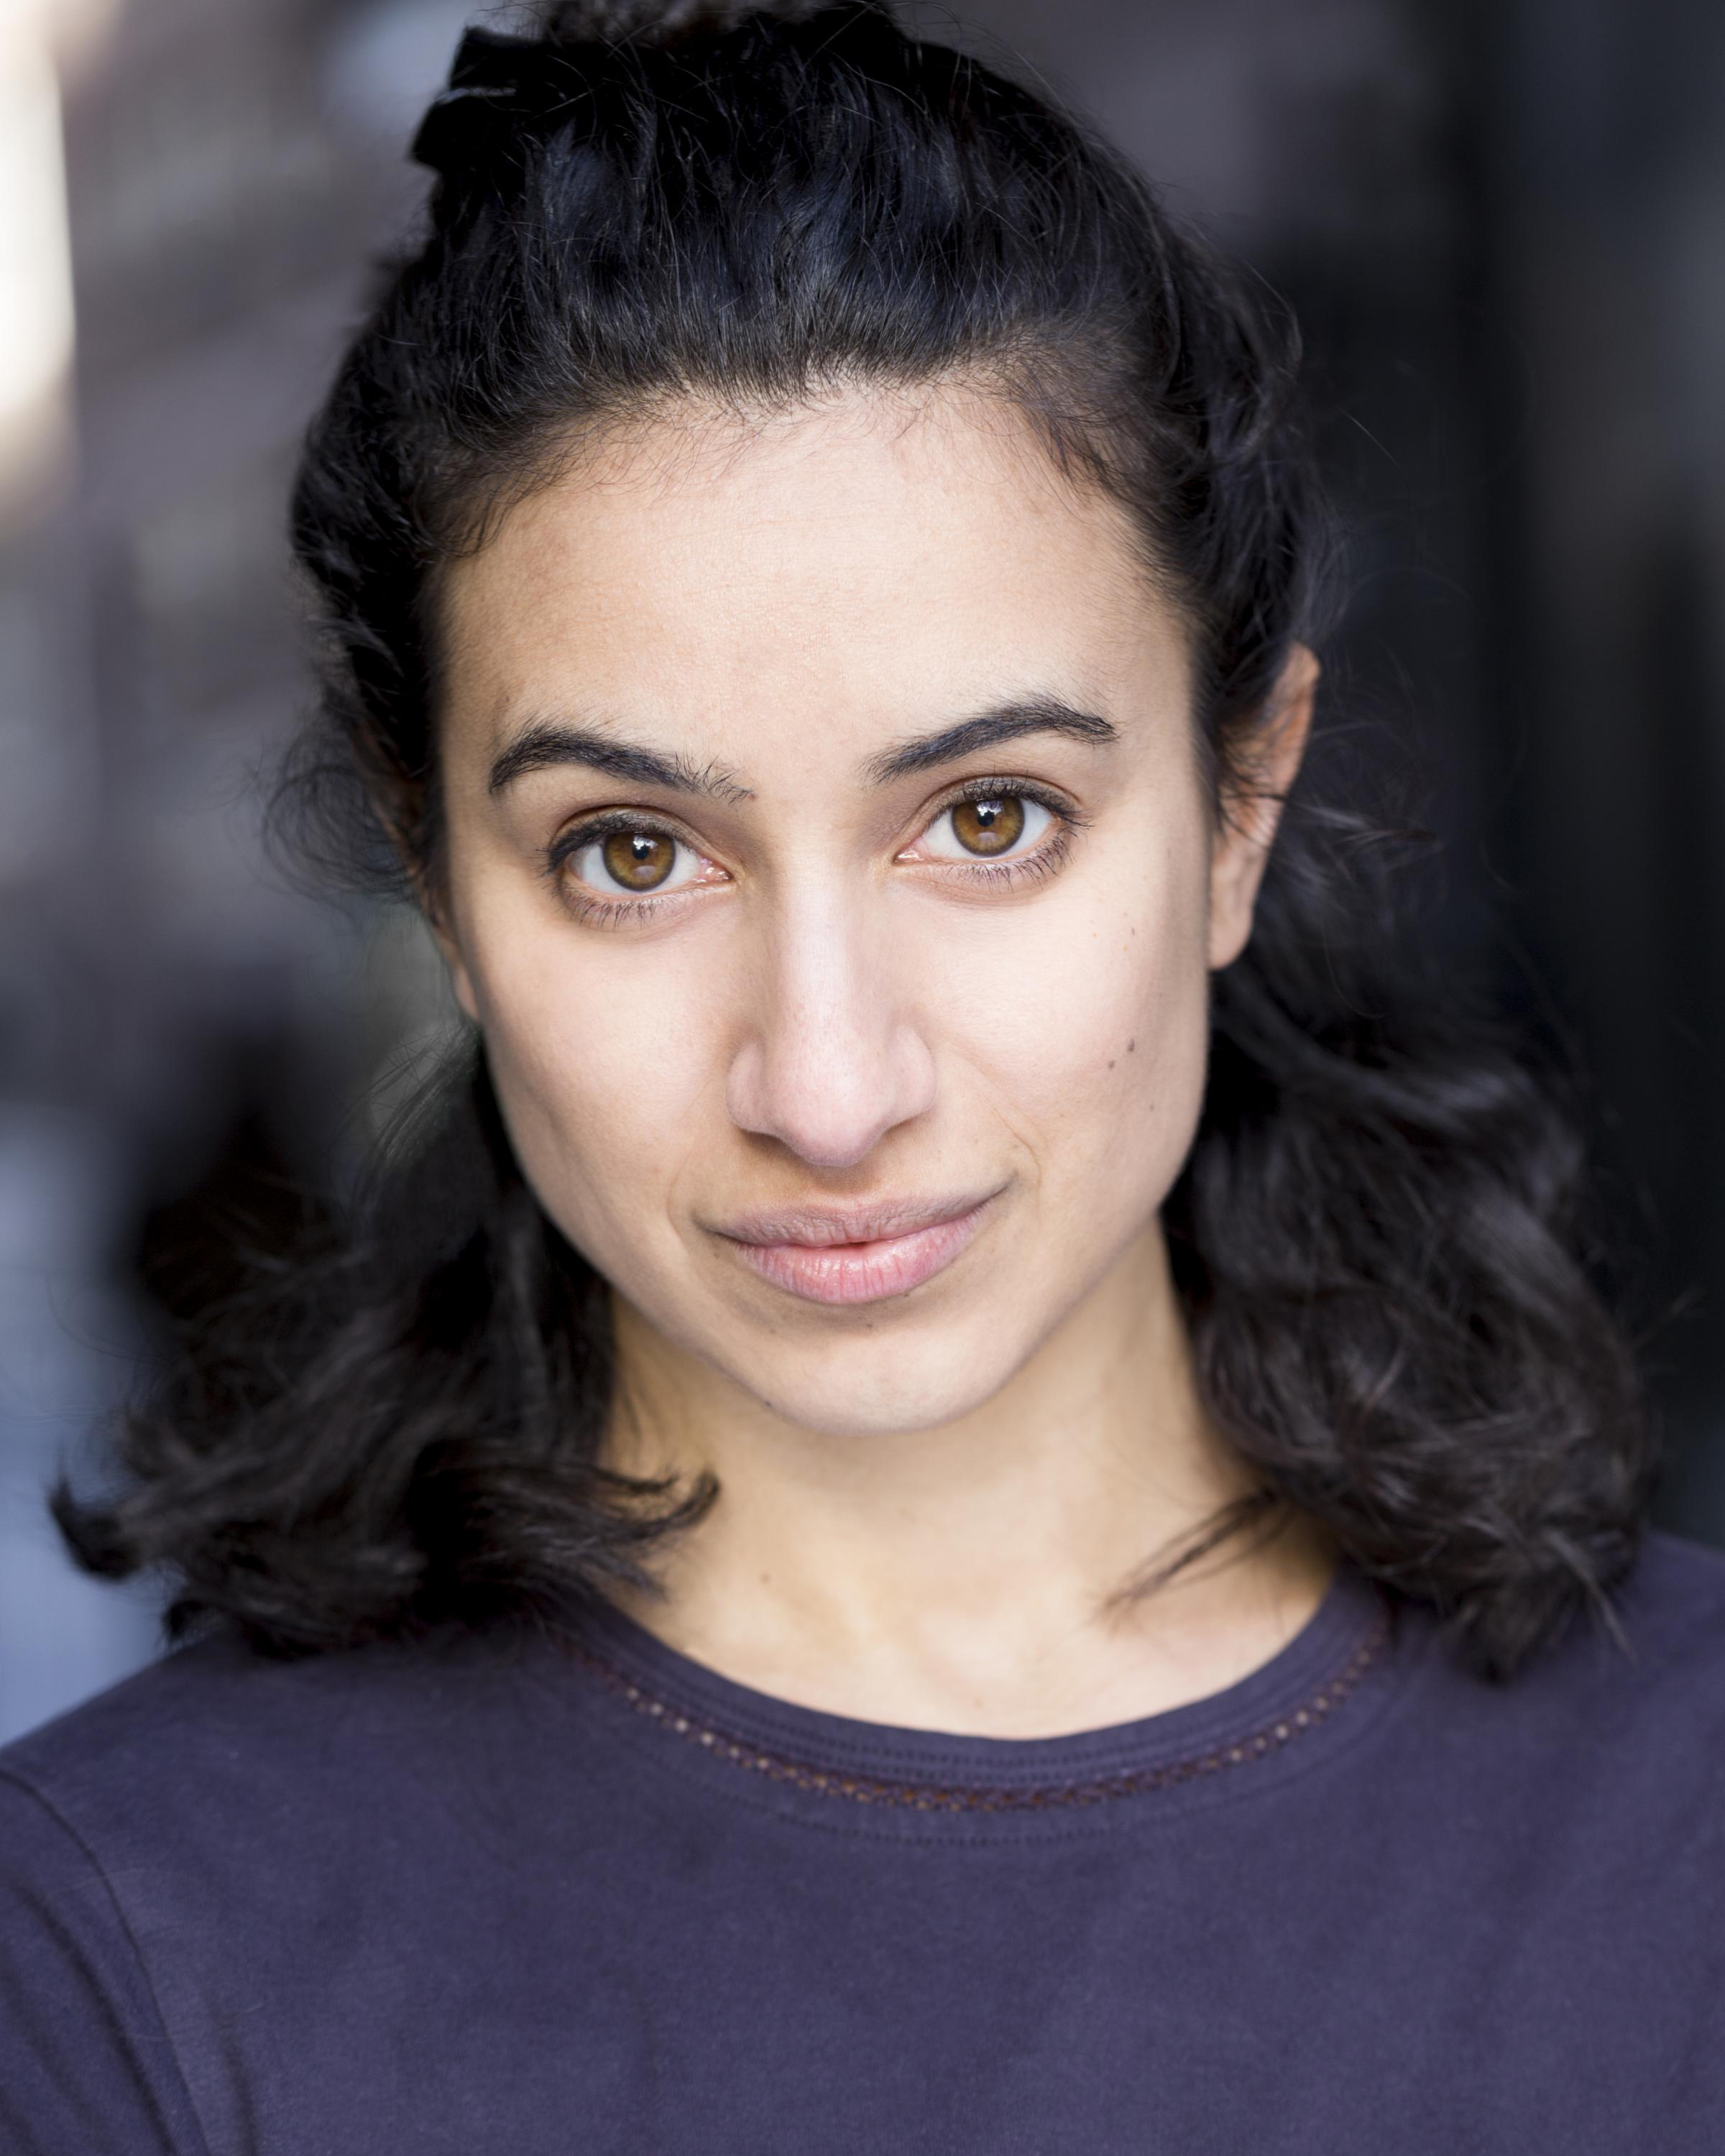 New post at SJT: emerging director Nadia Emam